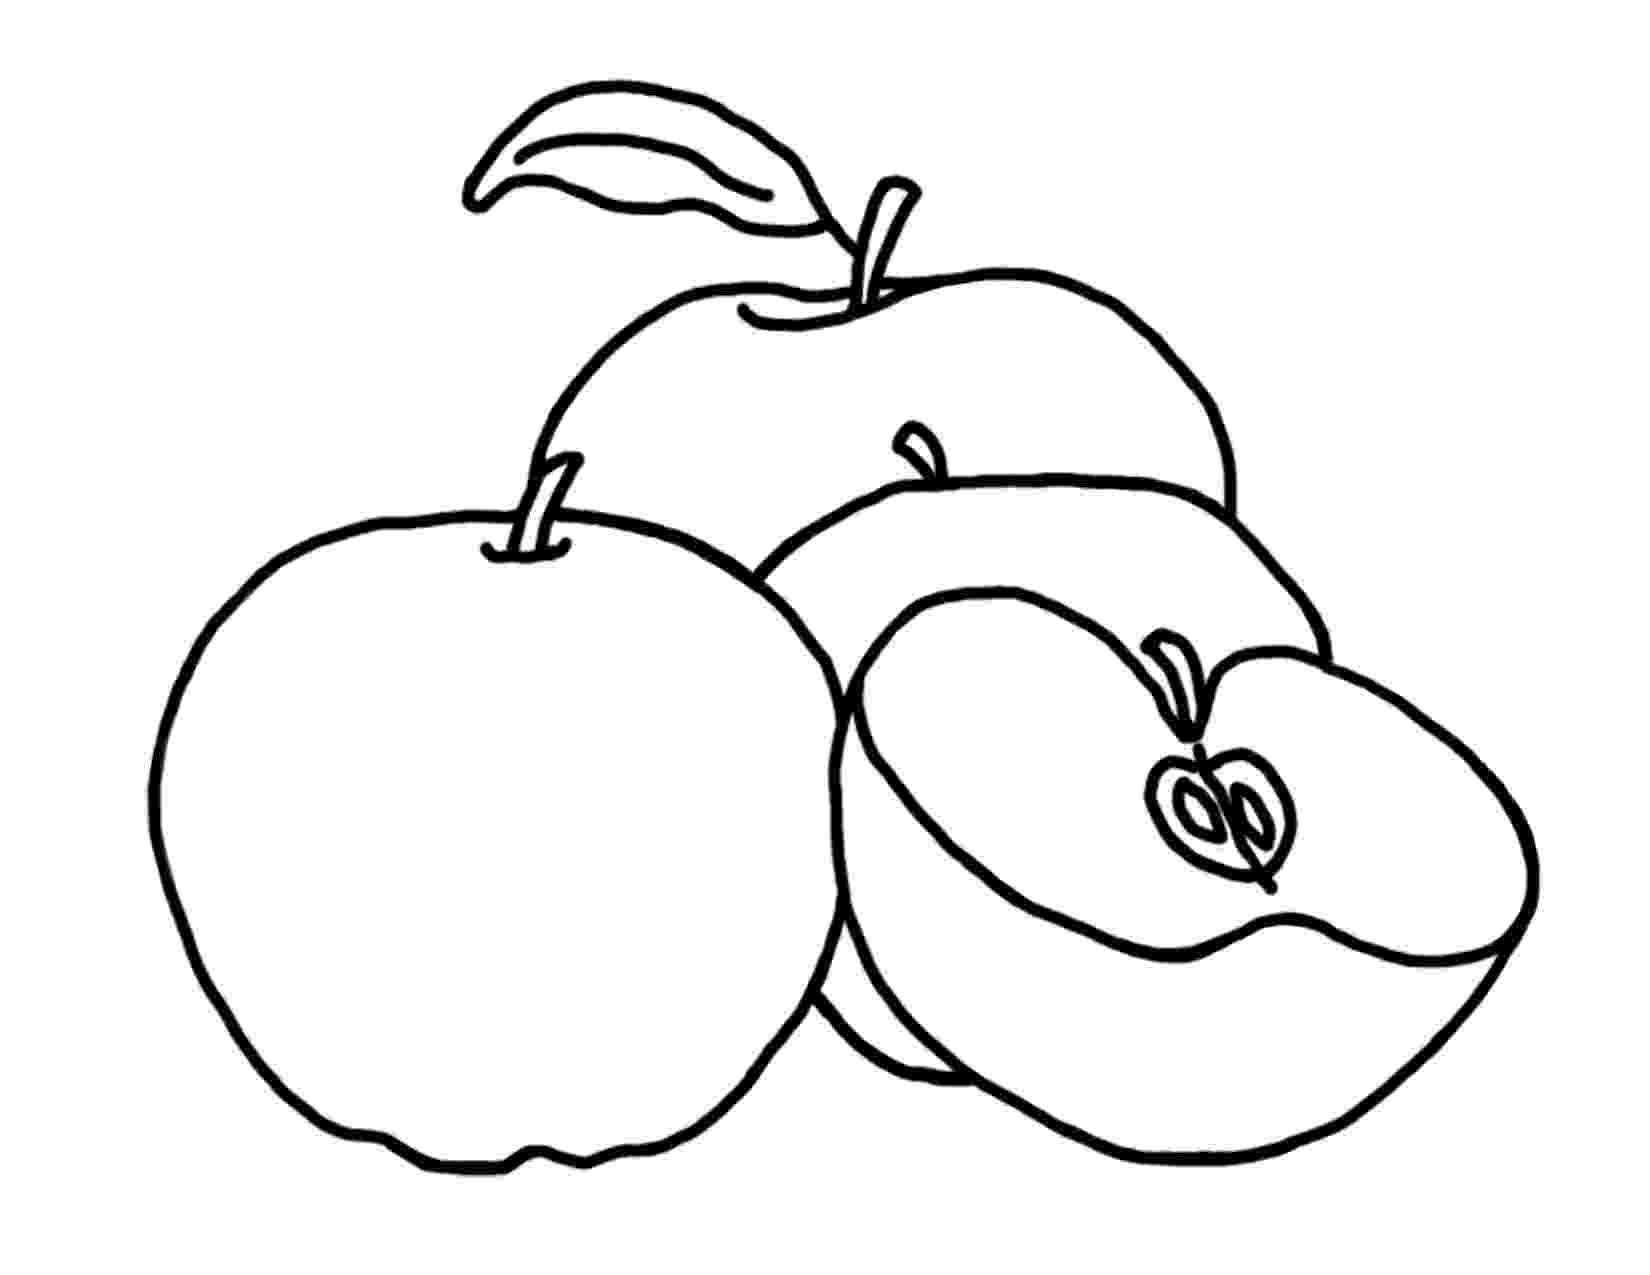 apple coloring picture free printable apple coloring pages for kids coloring picture apple